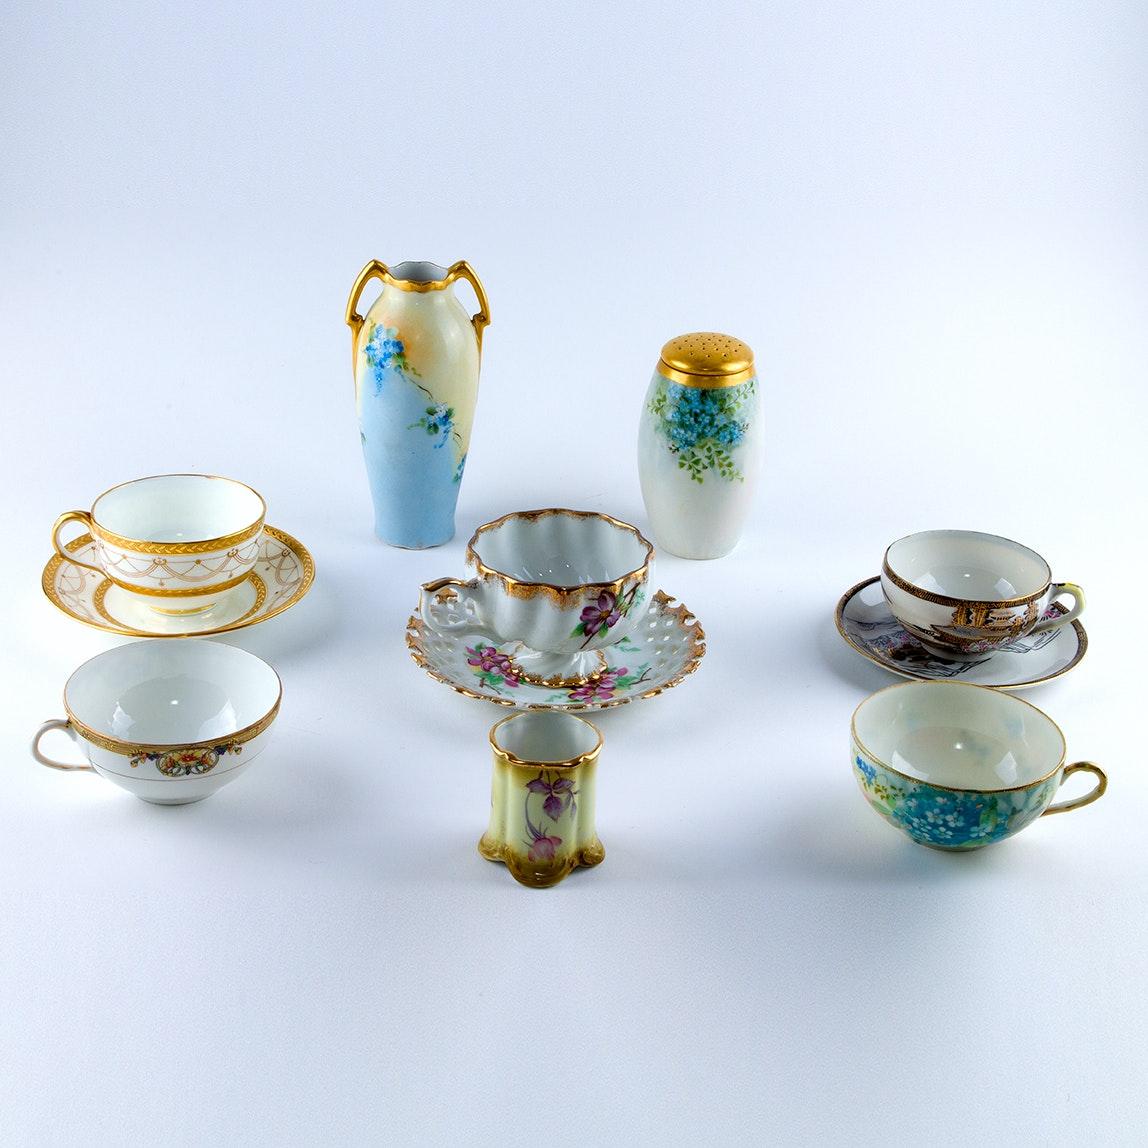 Vintage Porcelain Teacups and Tableware including Cauldon